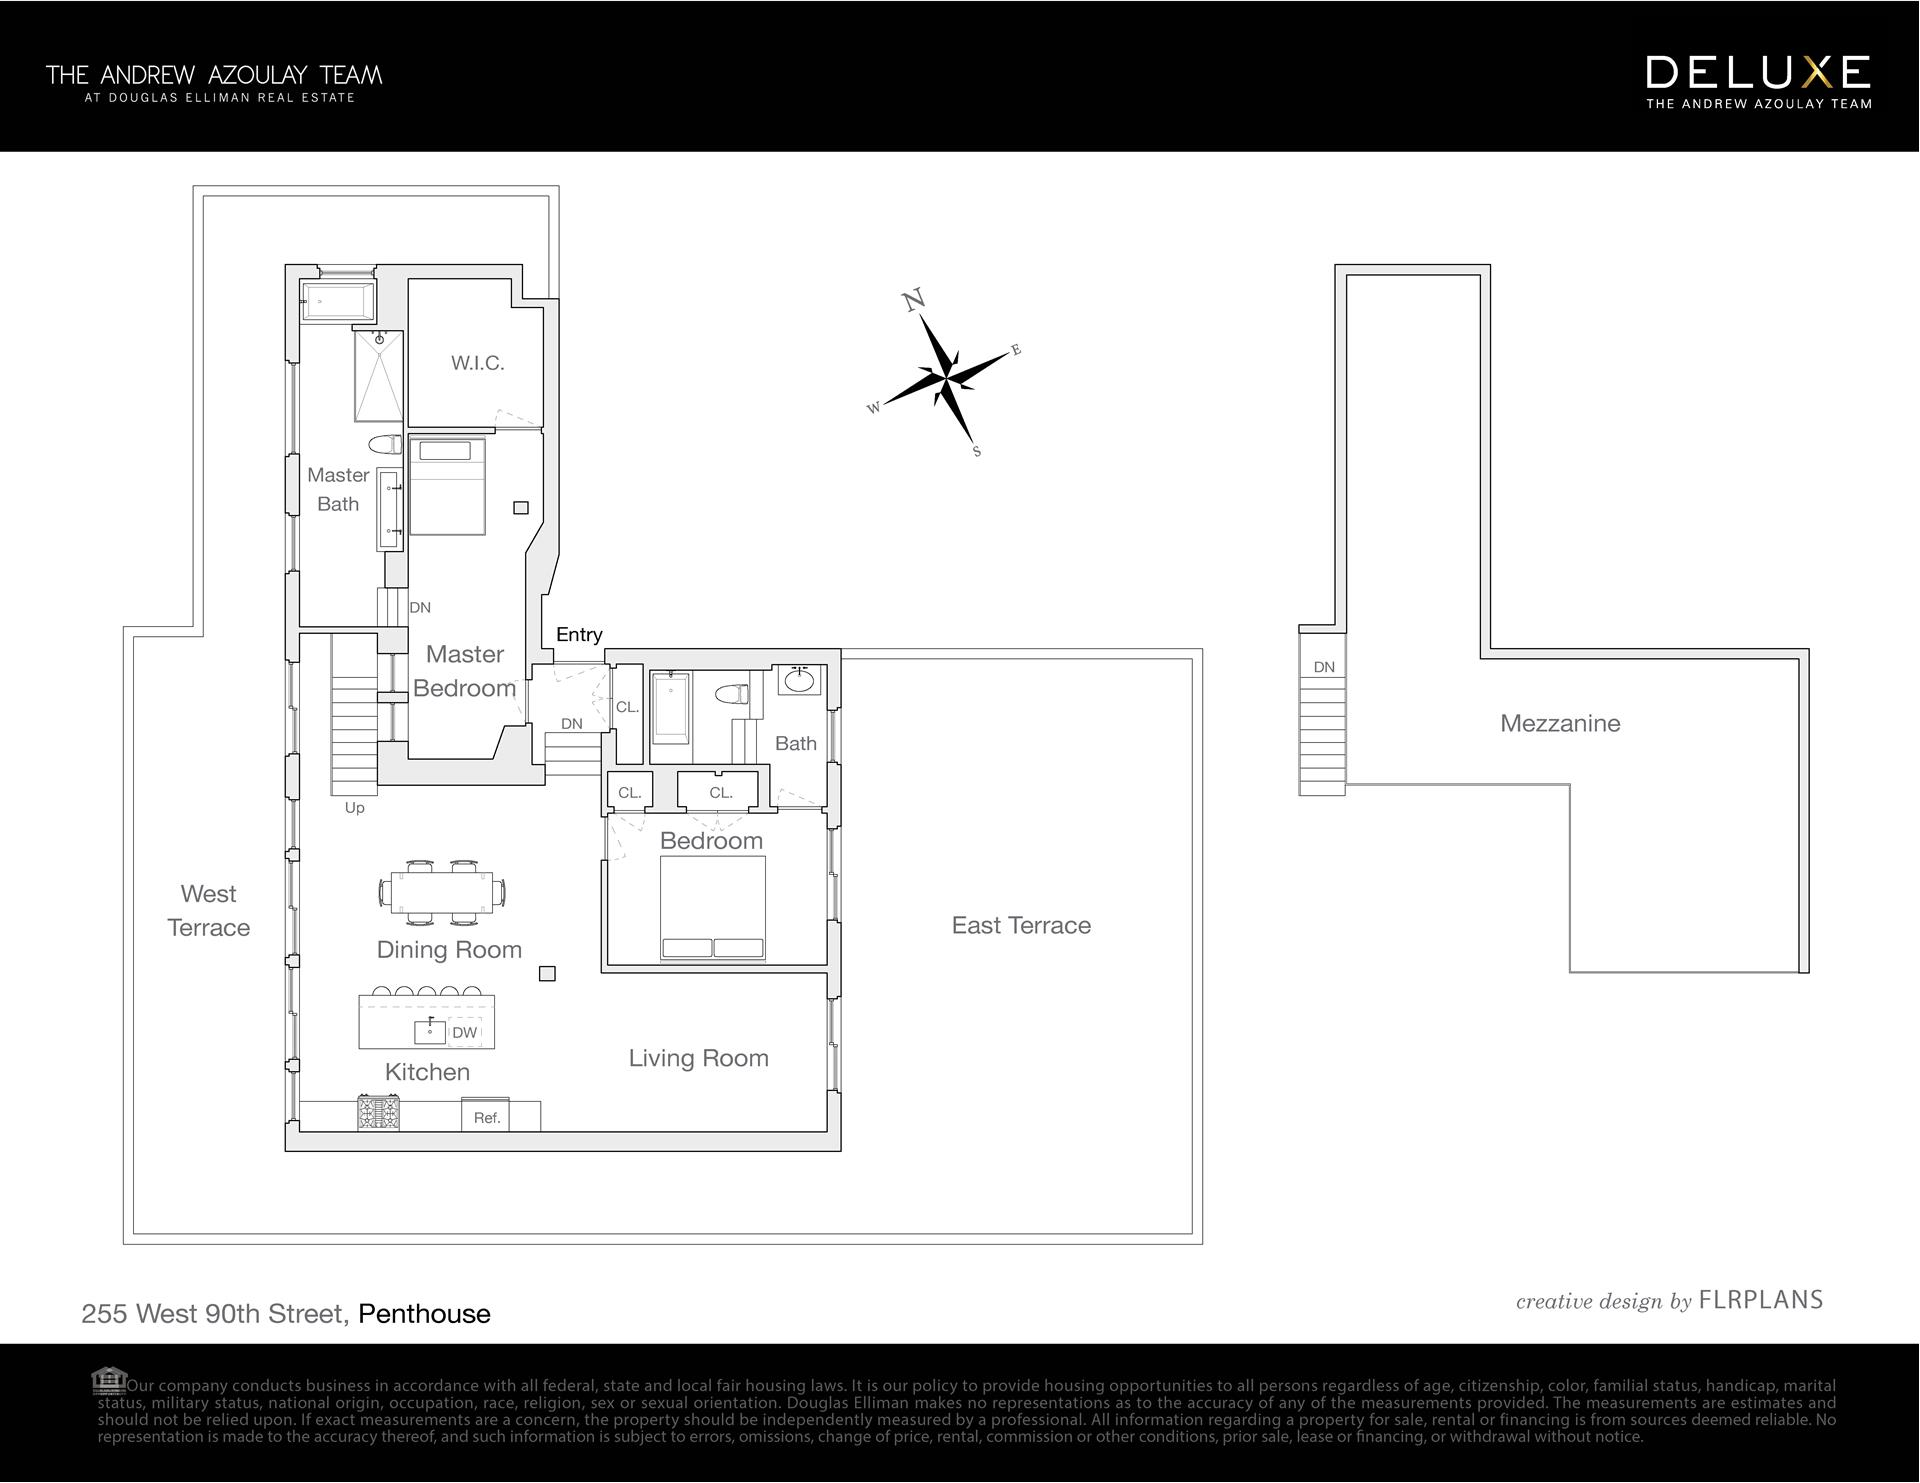 Floor plan of Cornwall, 255 West 90th St, PH - Upper West Side, New York